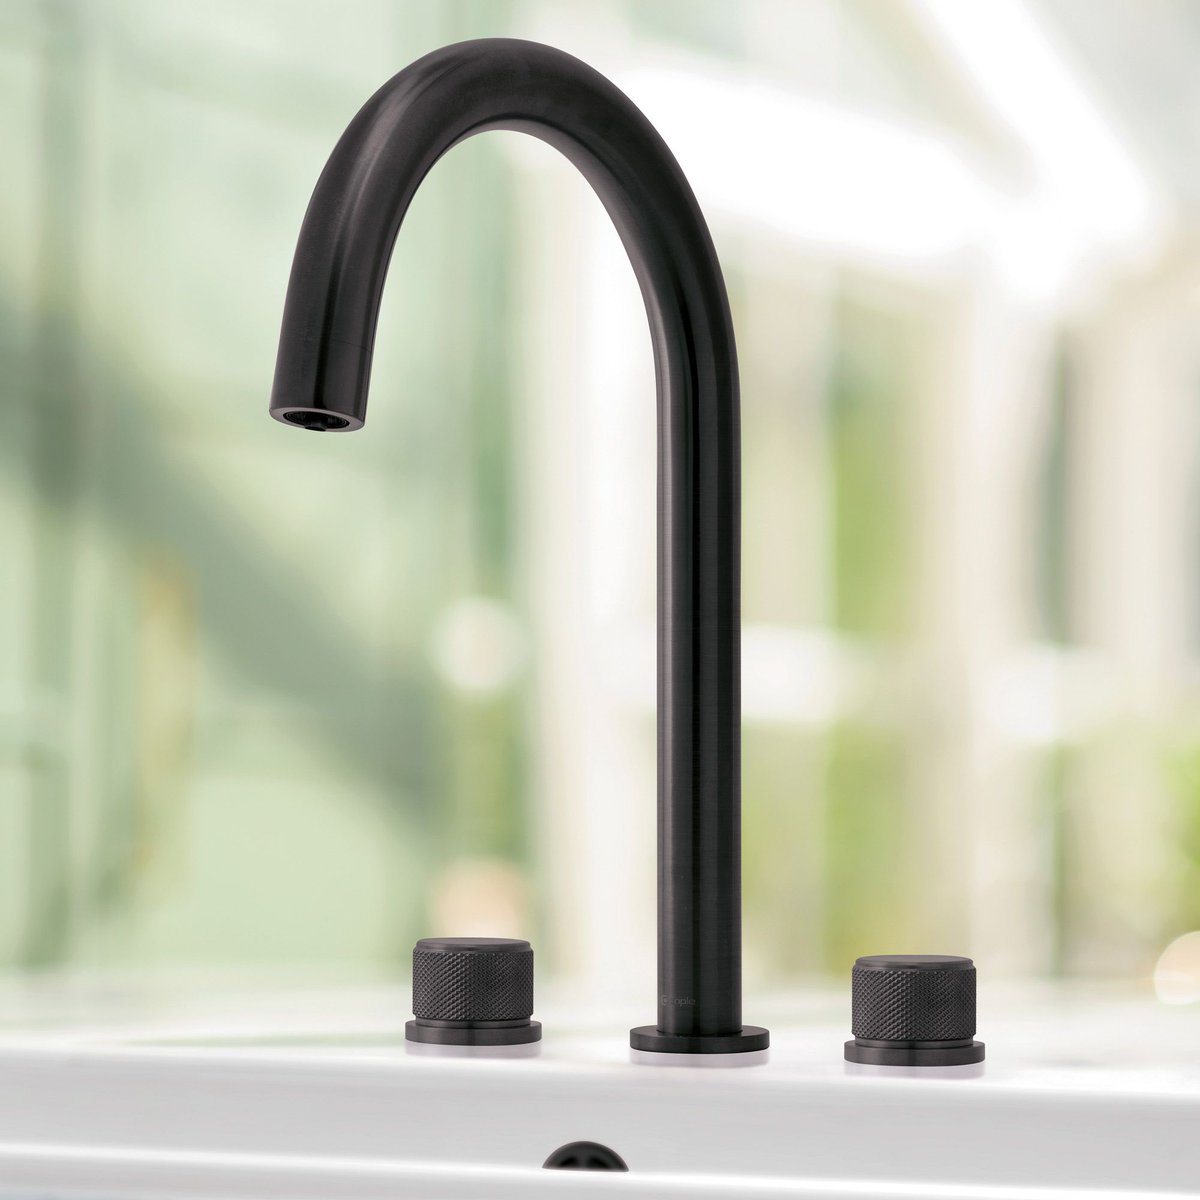 We've added our popular black steel finish to the Joya steaming water #tap range😍 As well as adding a touch of drama to any #kitchen, the water temperature reaches up to 98°C, perfect for speeding up the rice & pasta or making a quick cup of tea: buff.ly/3zMCE6H